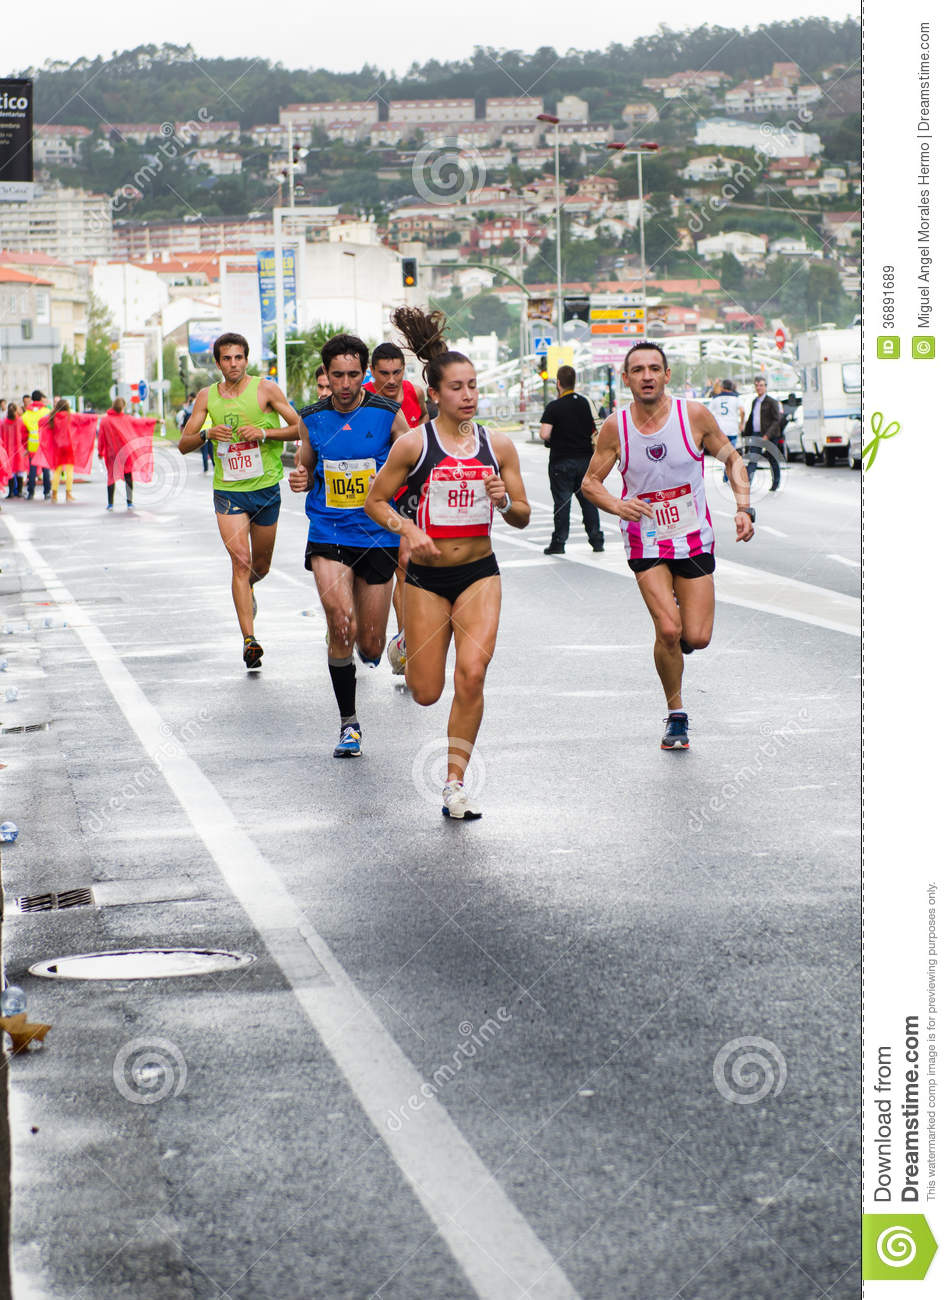 Download Maratona urbana immagine stock editoriale. Immagine di concorrenza - 36891689